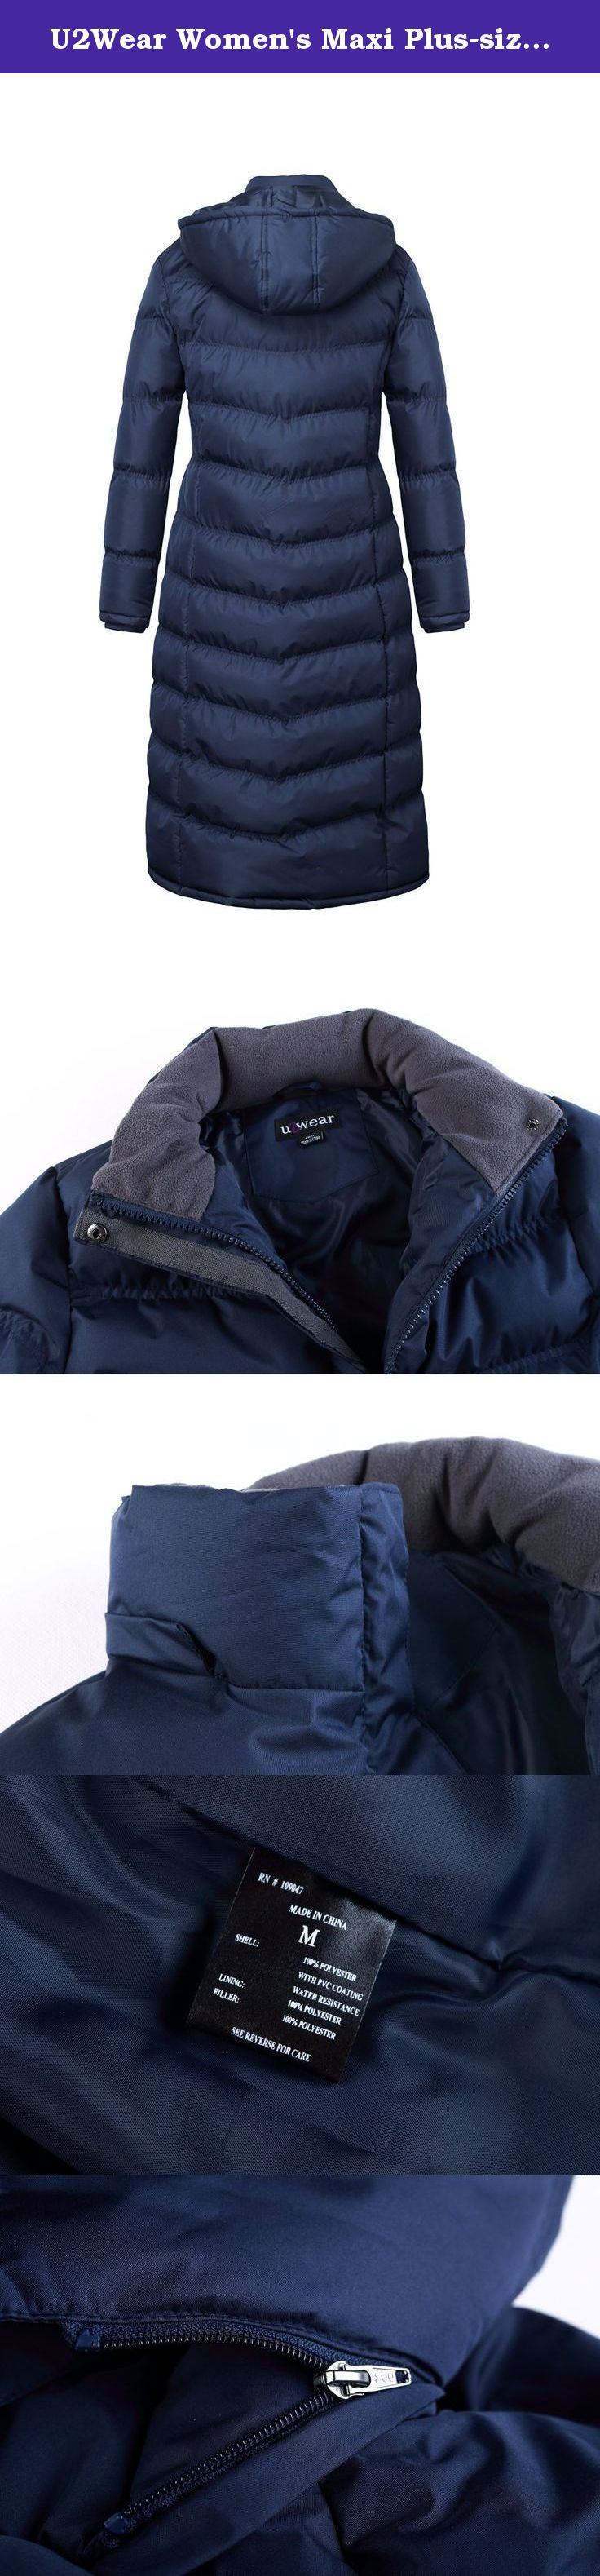 41483dc8129 U2Wear Women s Maxi Plus-size Water Resistant Puffer Full Length Coat with  Hood- Navy